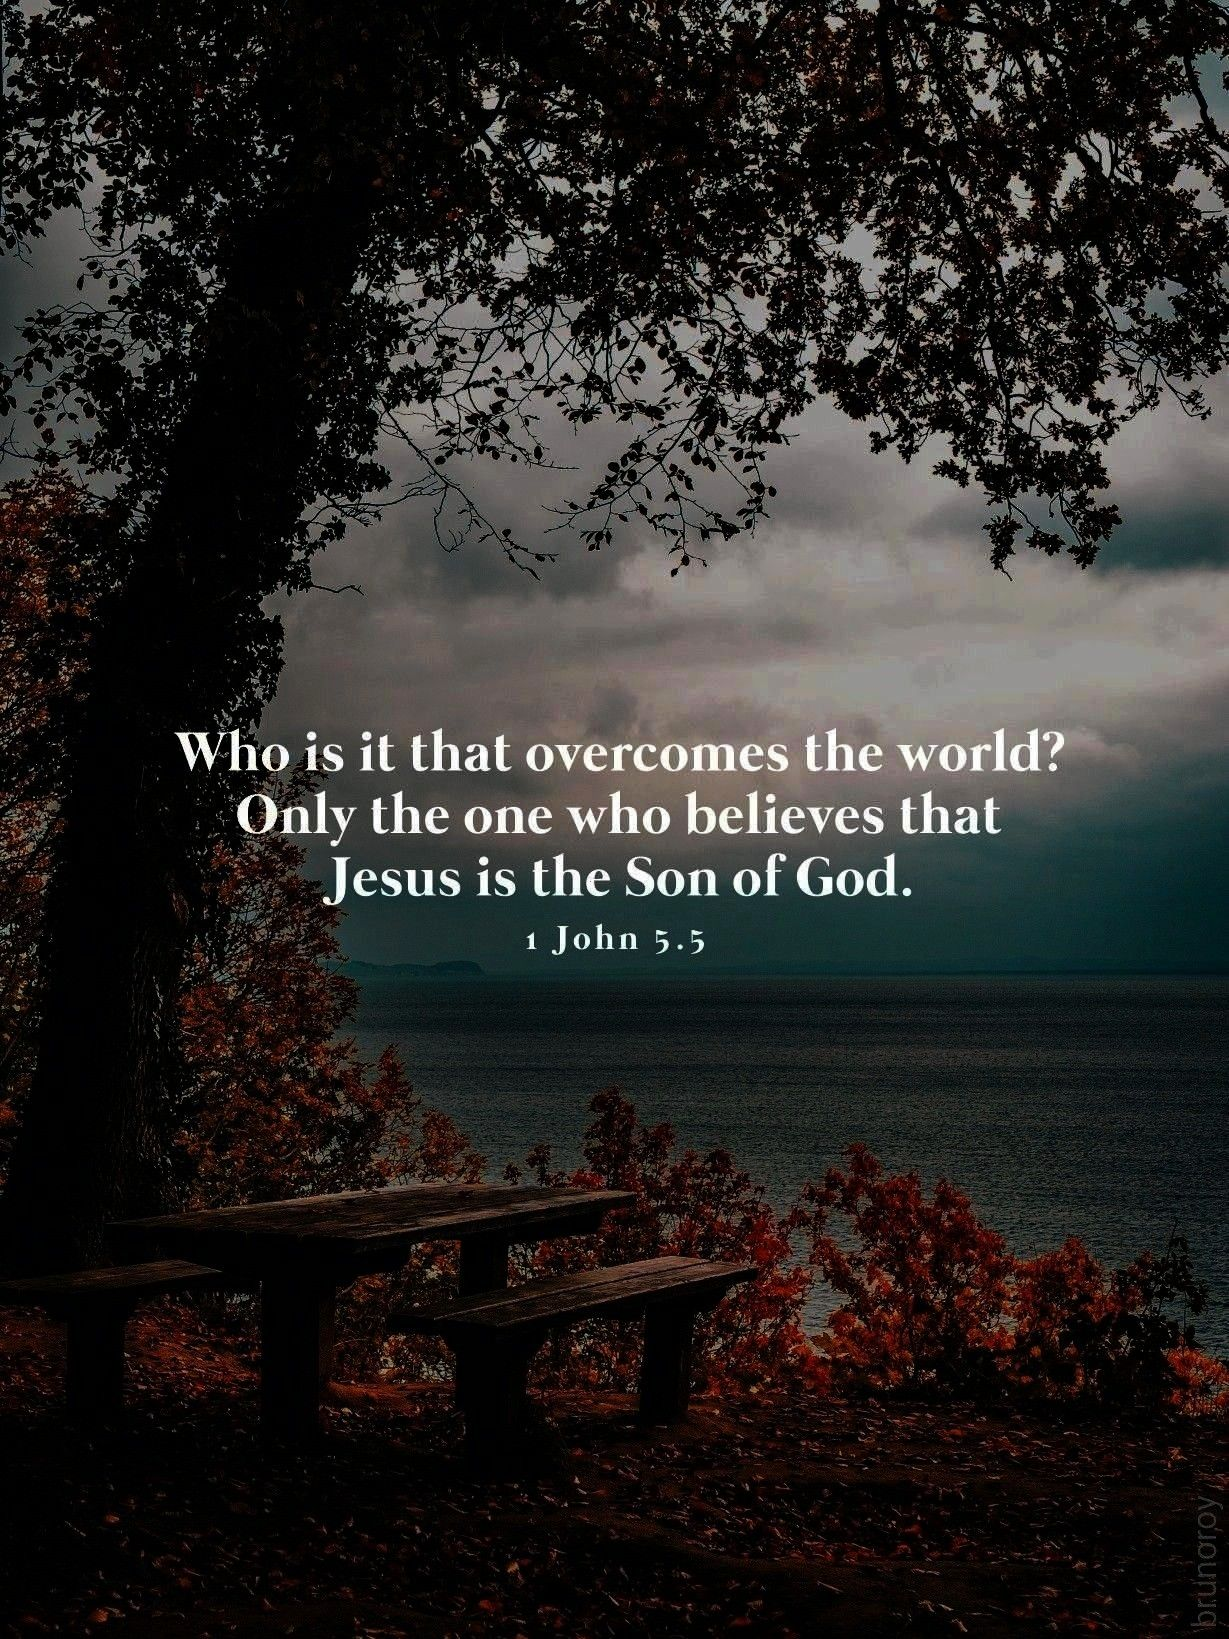 overcomes the world Only the one who believes that Jesus is the Son of God 1 John 55Who is it that overcomes the world Only the one who believes that Jesus is the Son of...